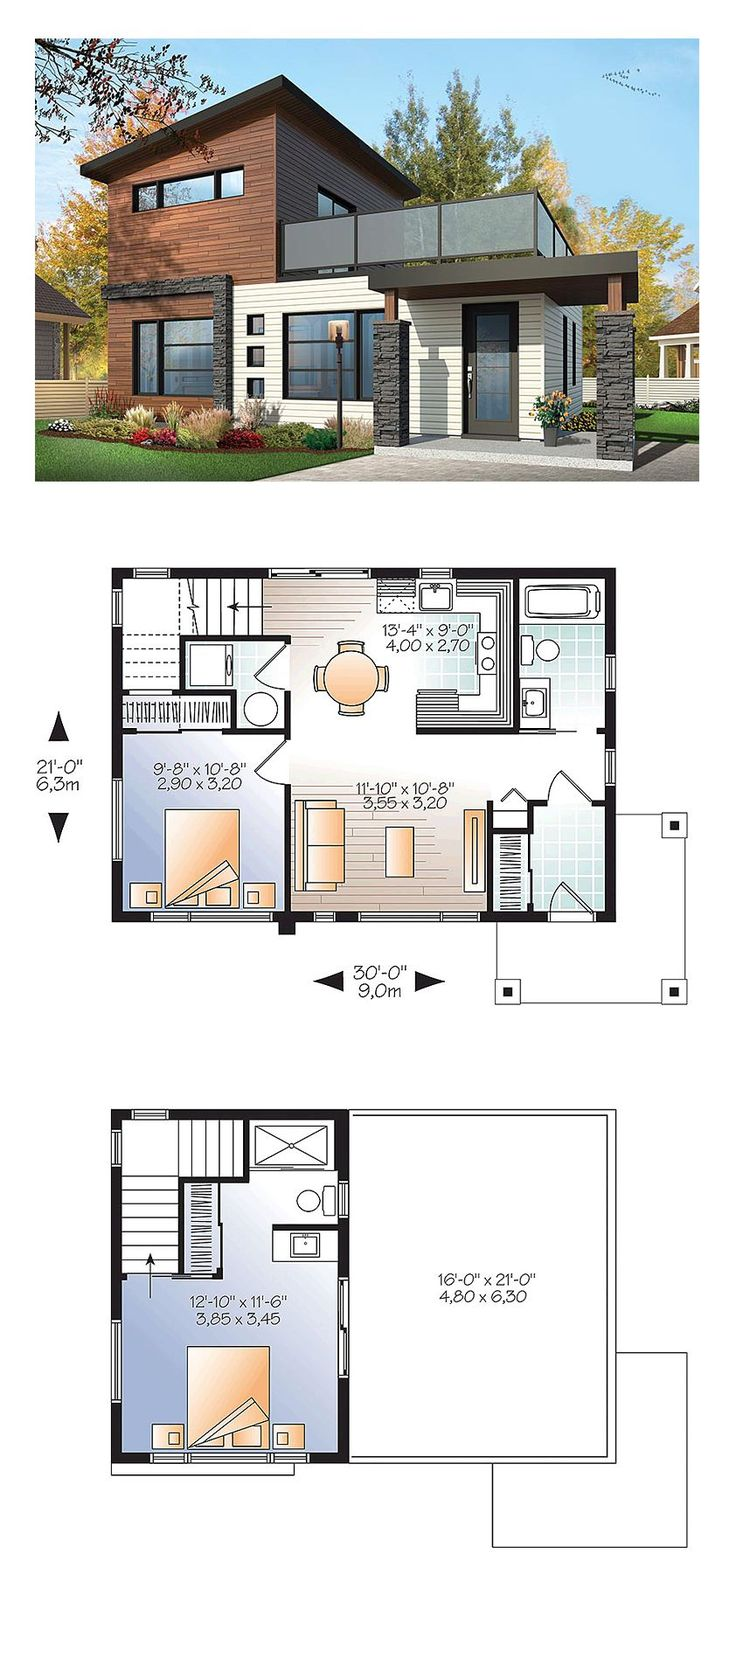 25 best ideas about modern house plans on pinterest for Small house plans